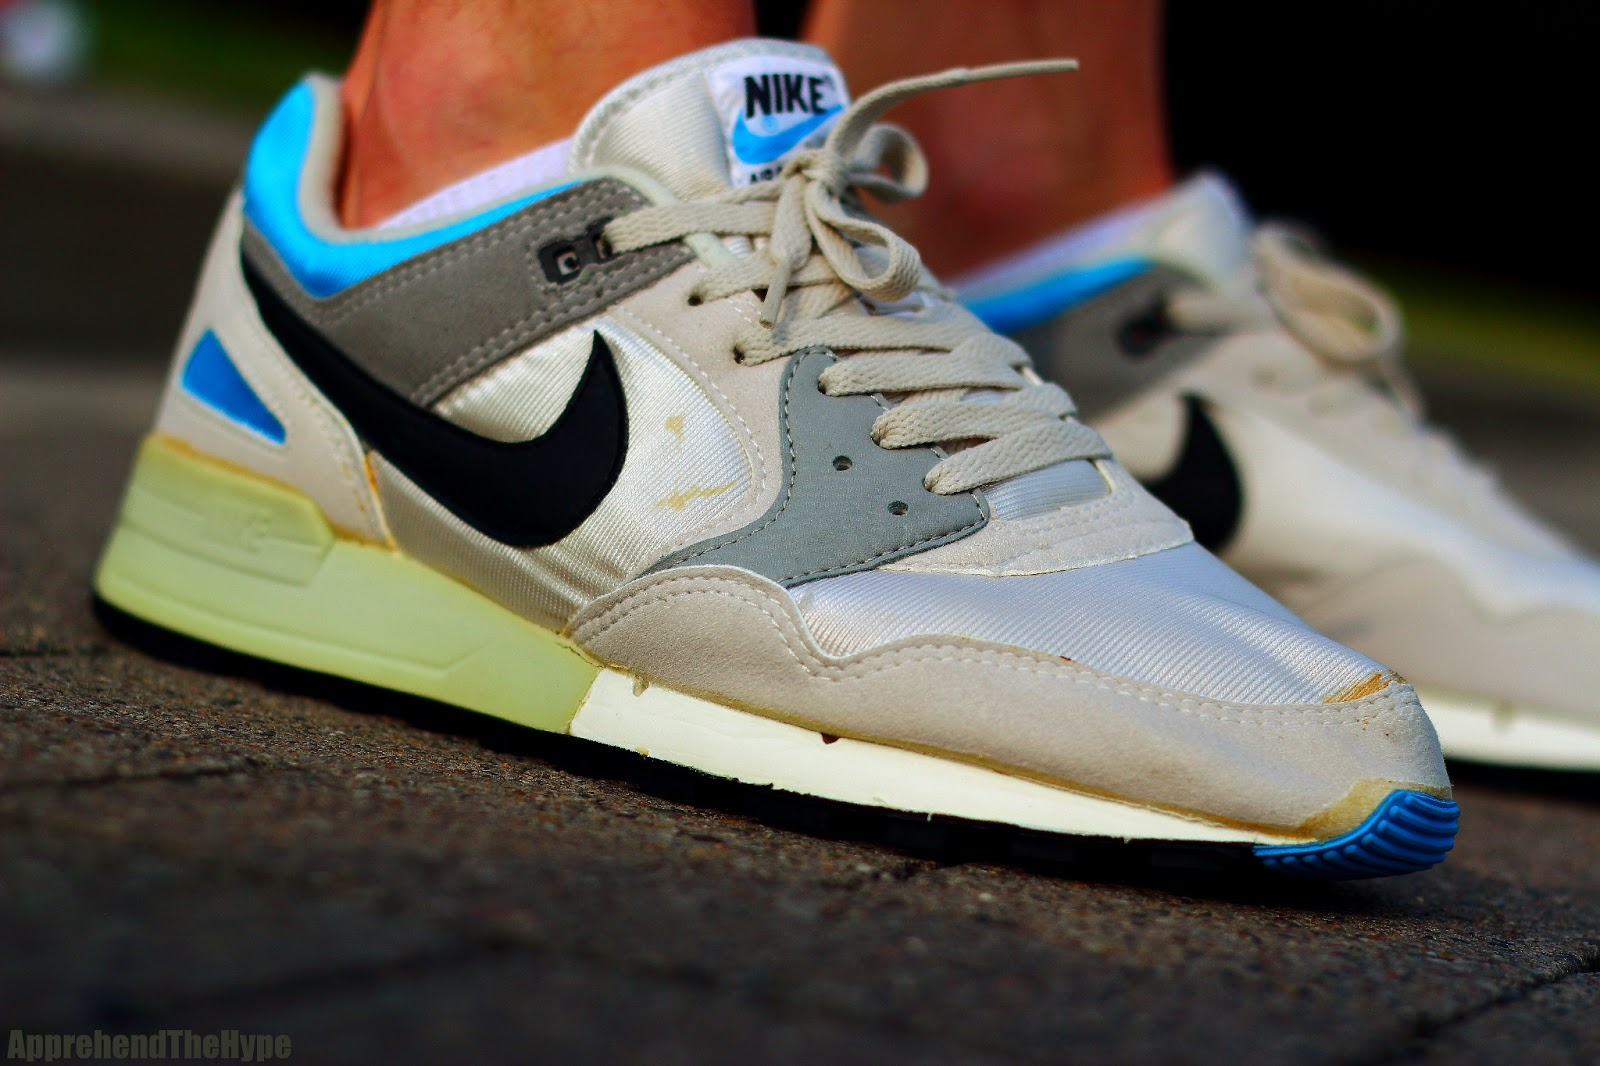 apprehend the hype nike air pegasus 89 og blue. Black Bedroom Furniture Sets. Home Design Ideas